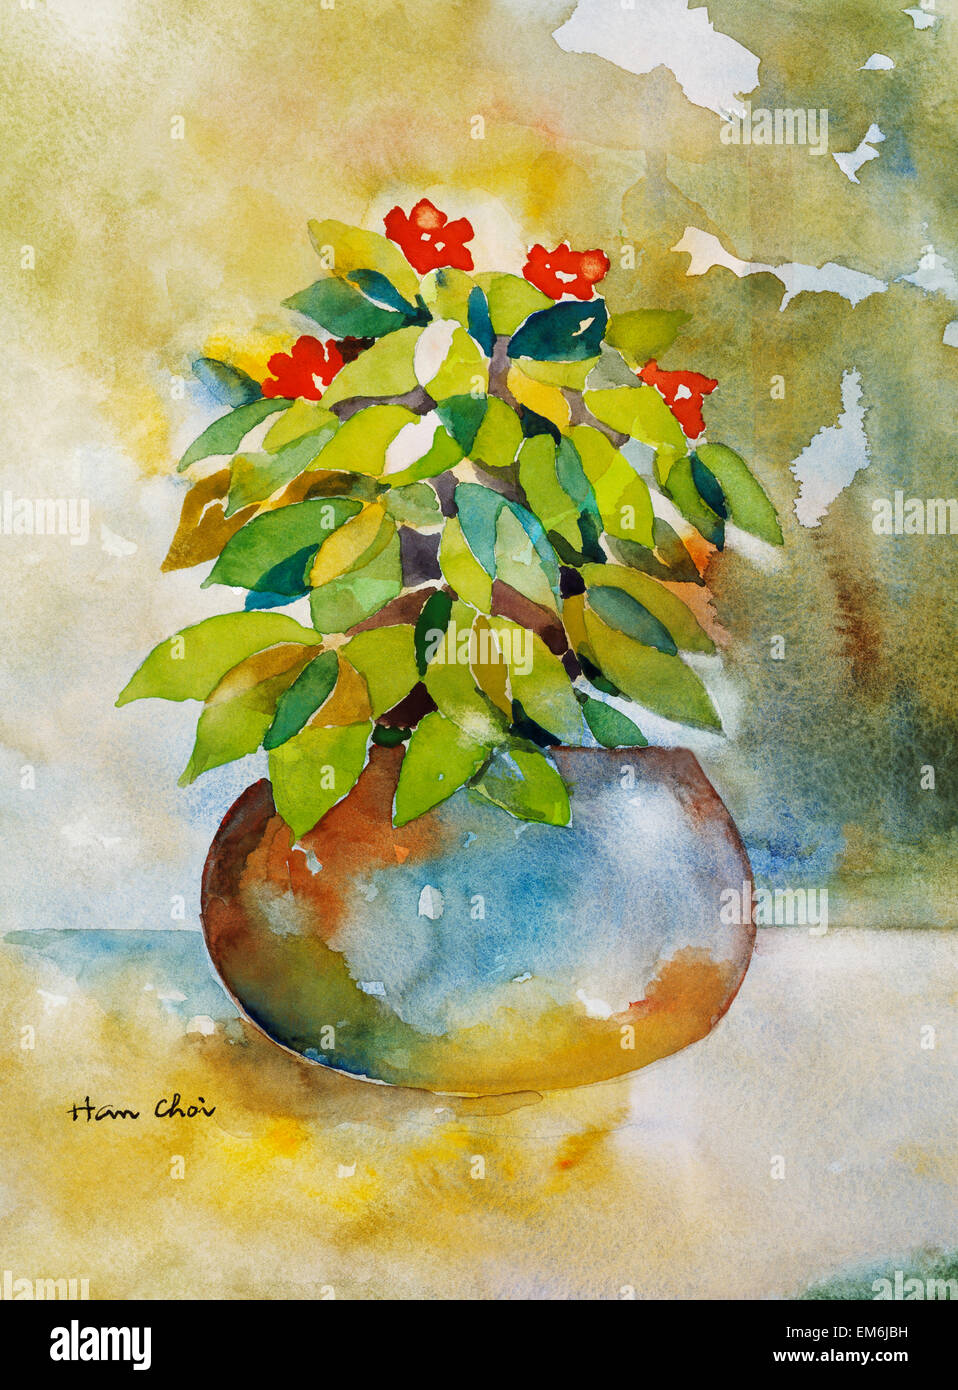 Happiness, Colorful Potted Plant (Watercolor Painting Stock Photo ...